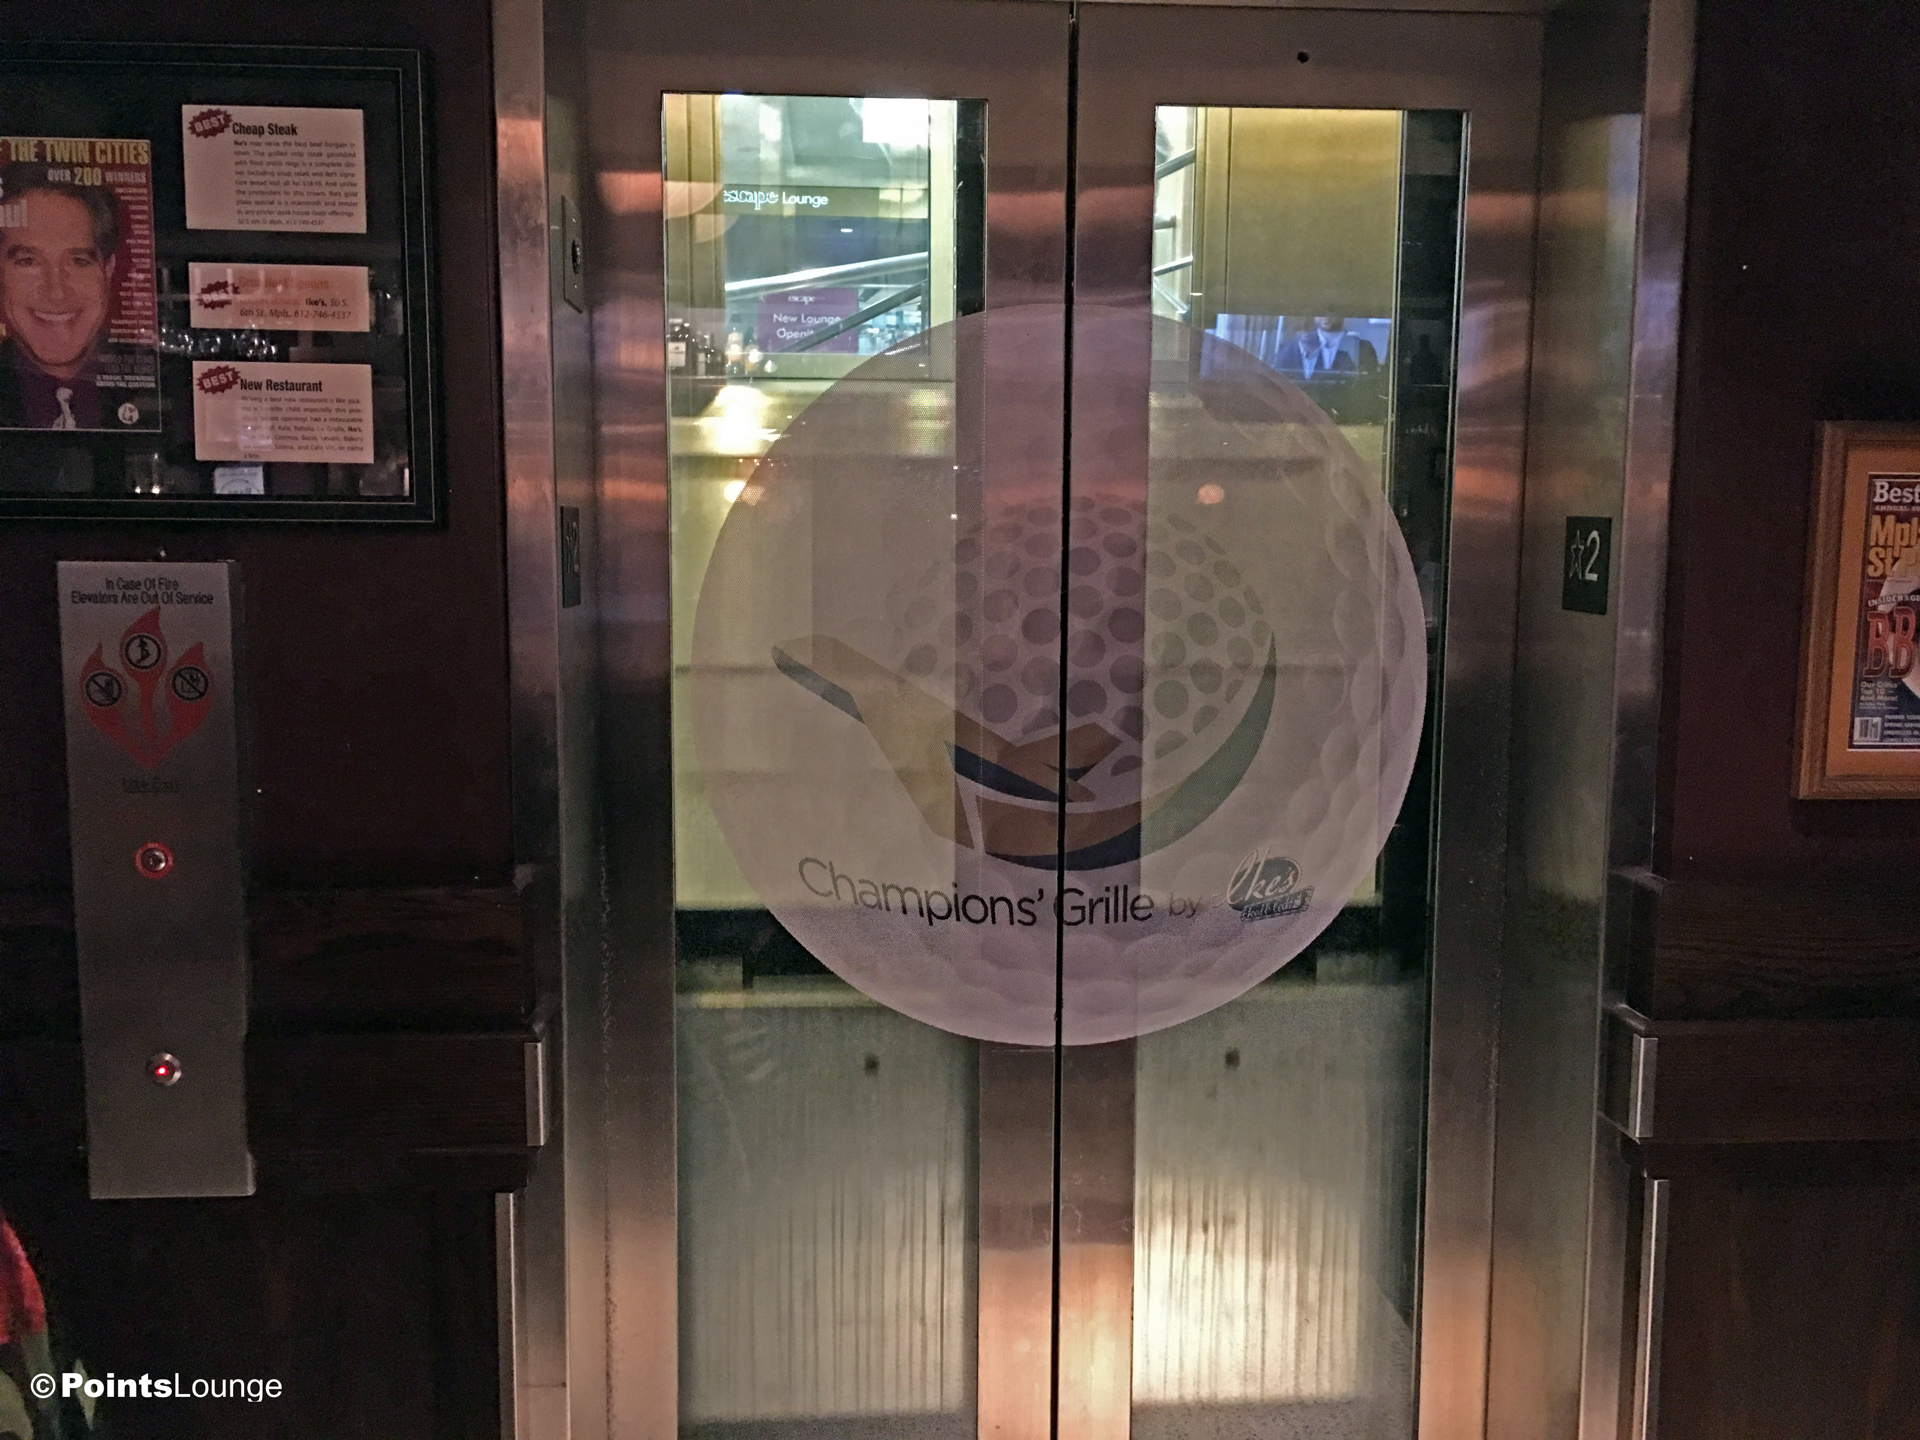 A view of the elevator to Ch&ionu0027 Grille by Ikeu0027s and the PGA MSP golf & PGA-MSP-Airport-Golf-Lounge-Champions-Grill-Ikes-Elevator-Doors ...